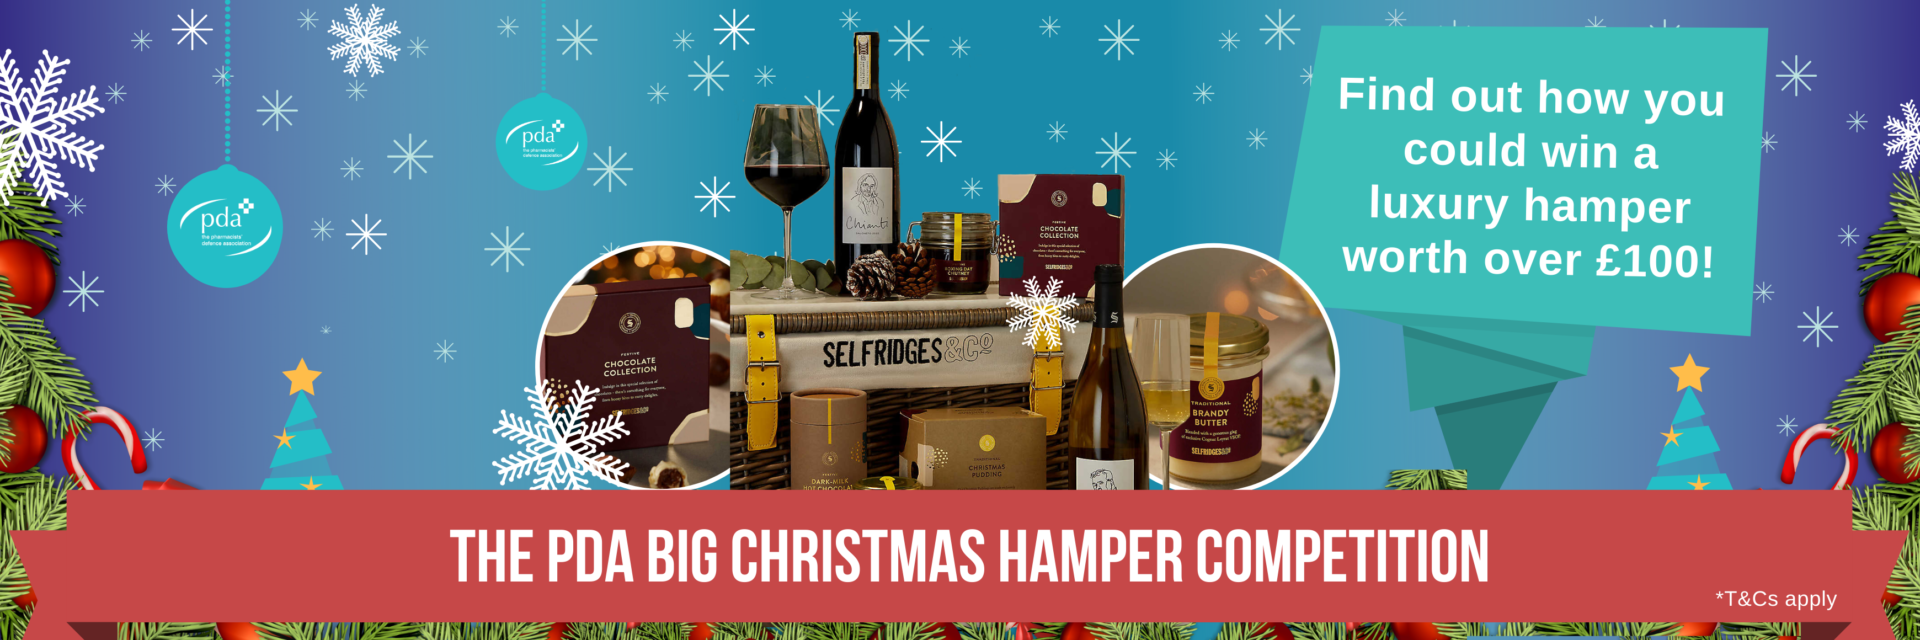 Find out how you could win a luxury Christmas hamper worth over £100!